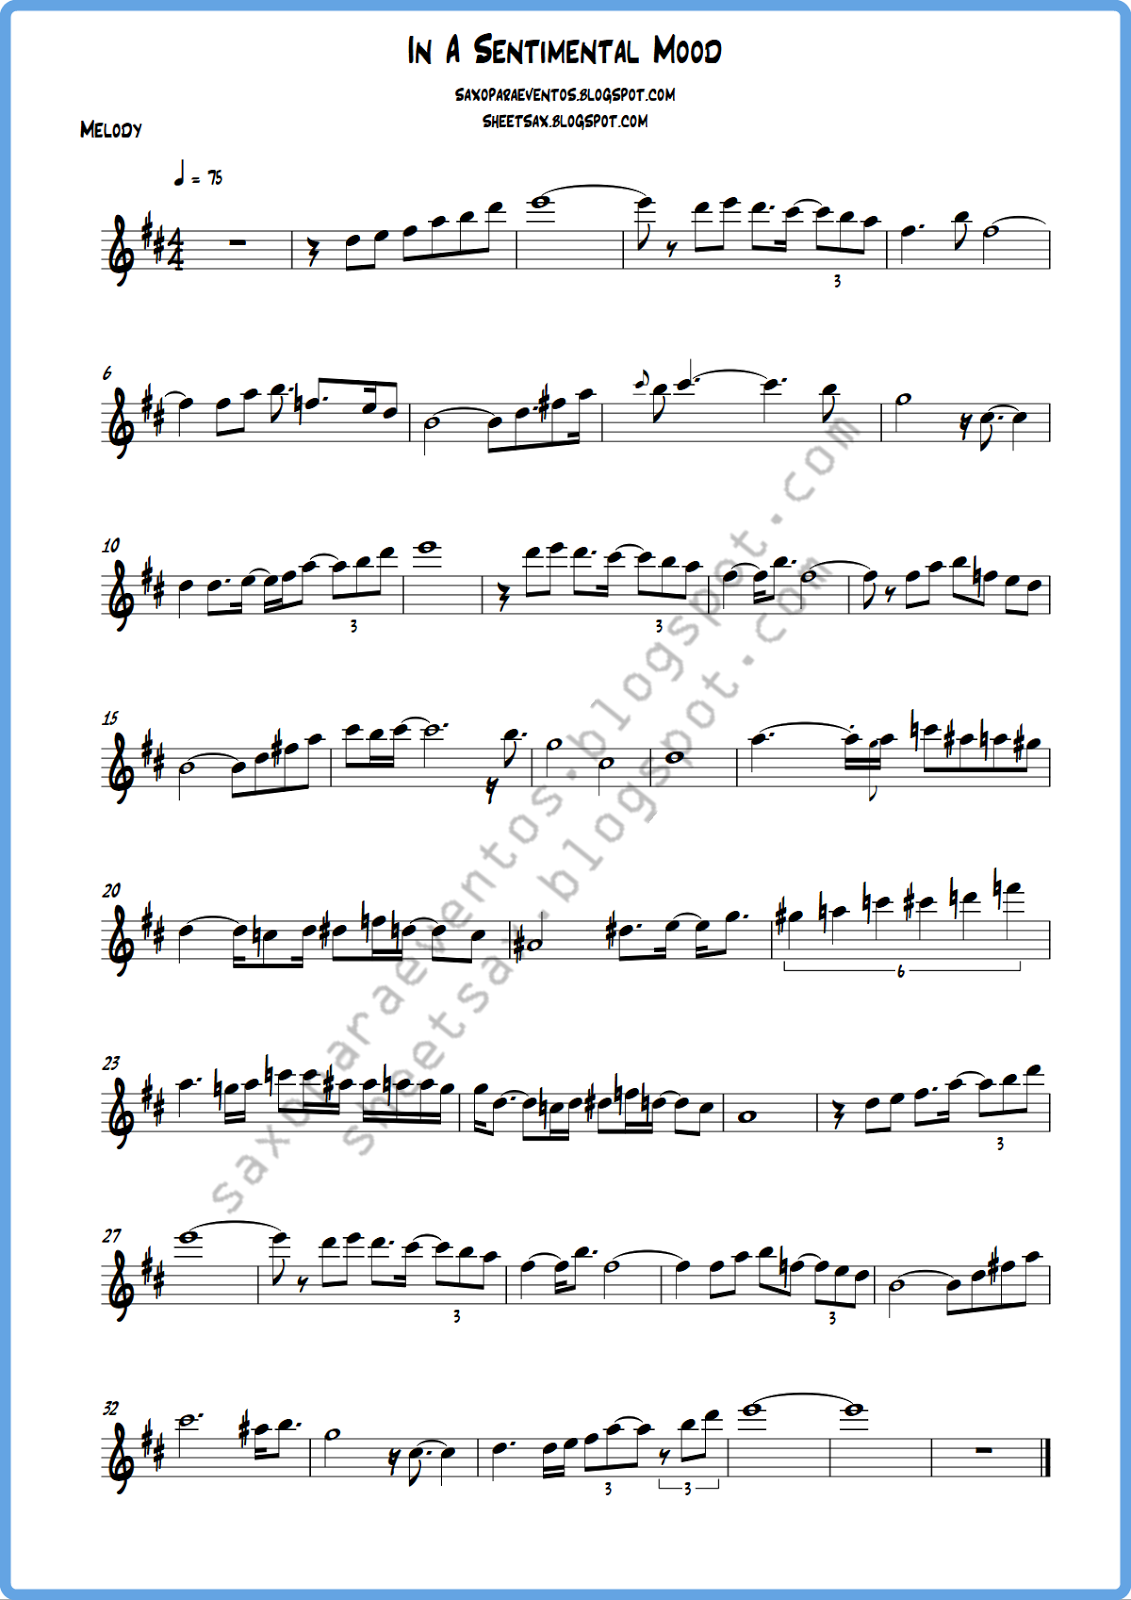 Sheet Music in b Flat Sheet Music of in a